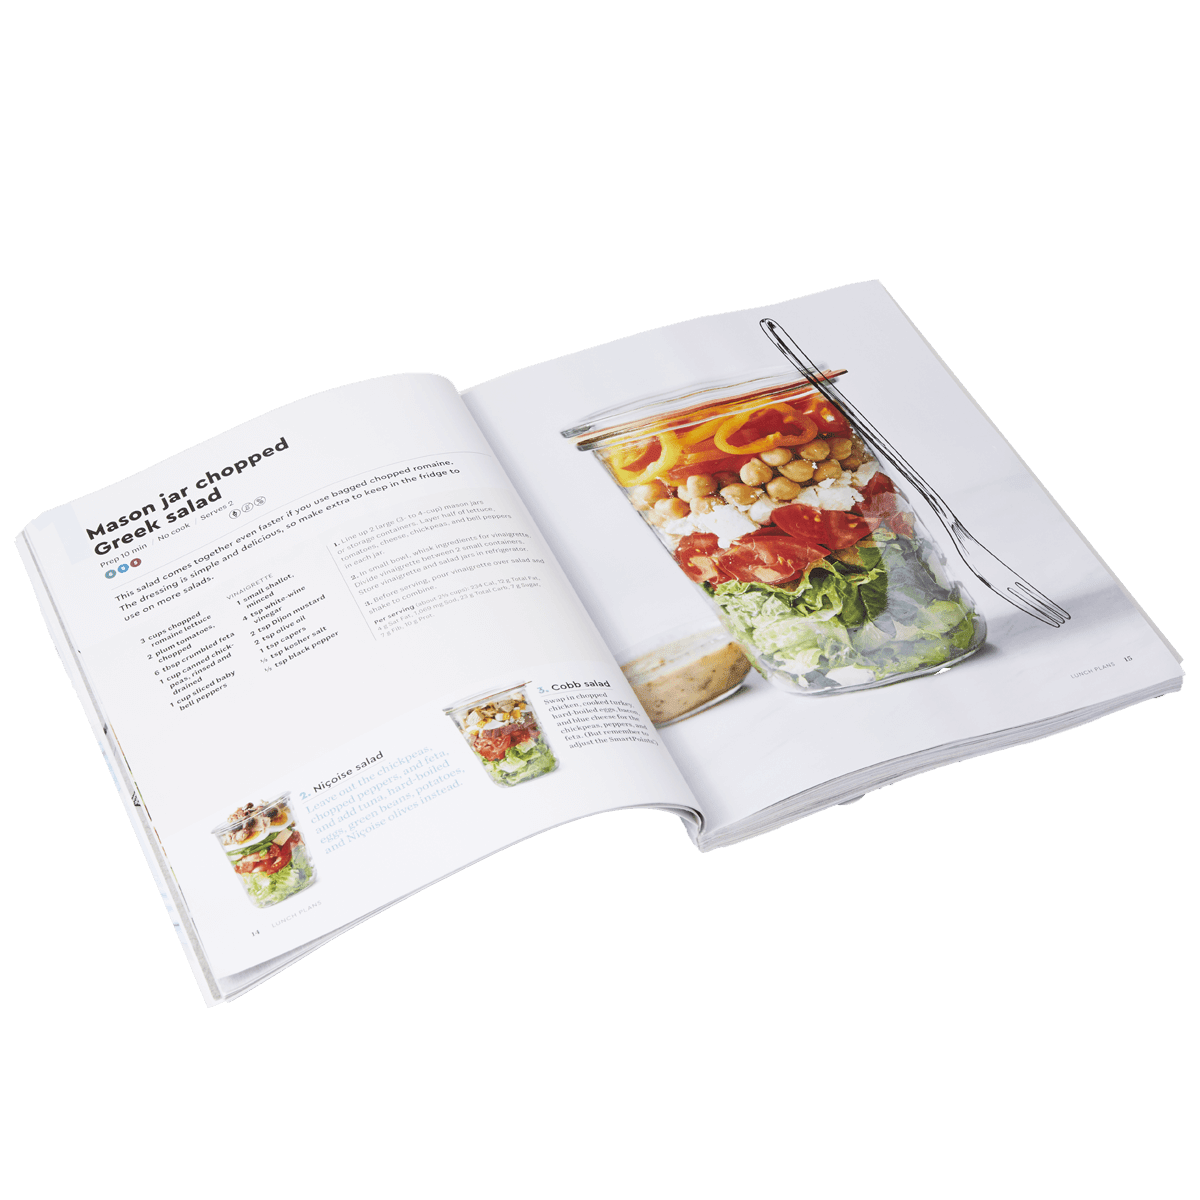 Lunch Plans Cookbook - page 2